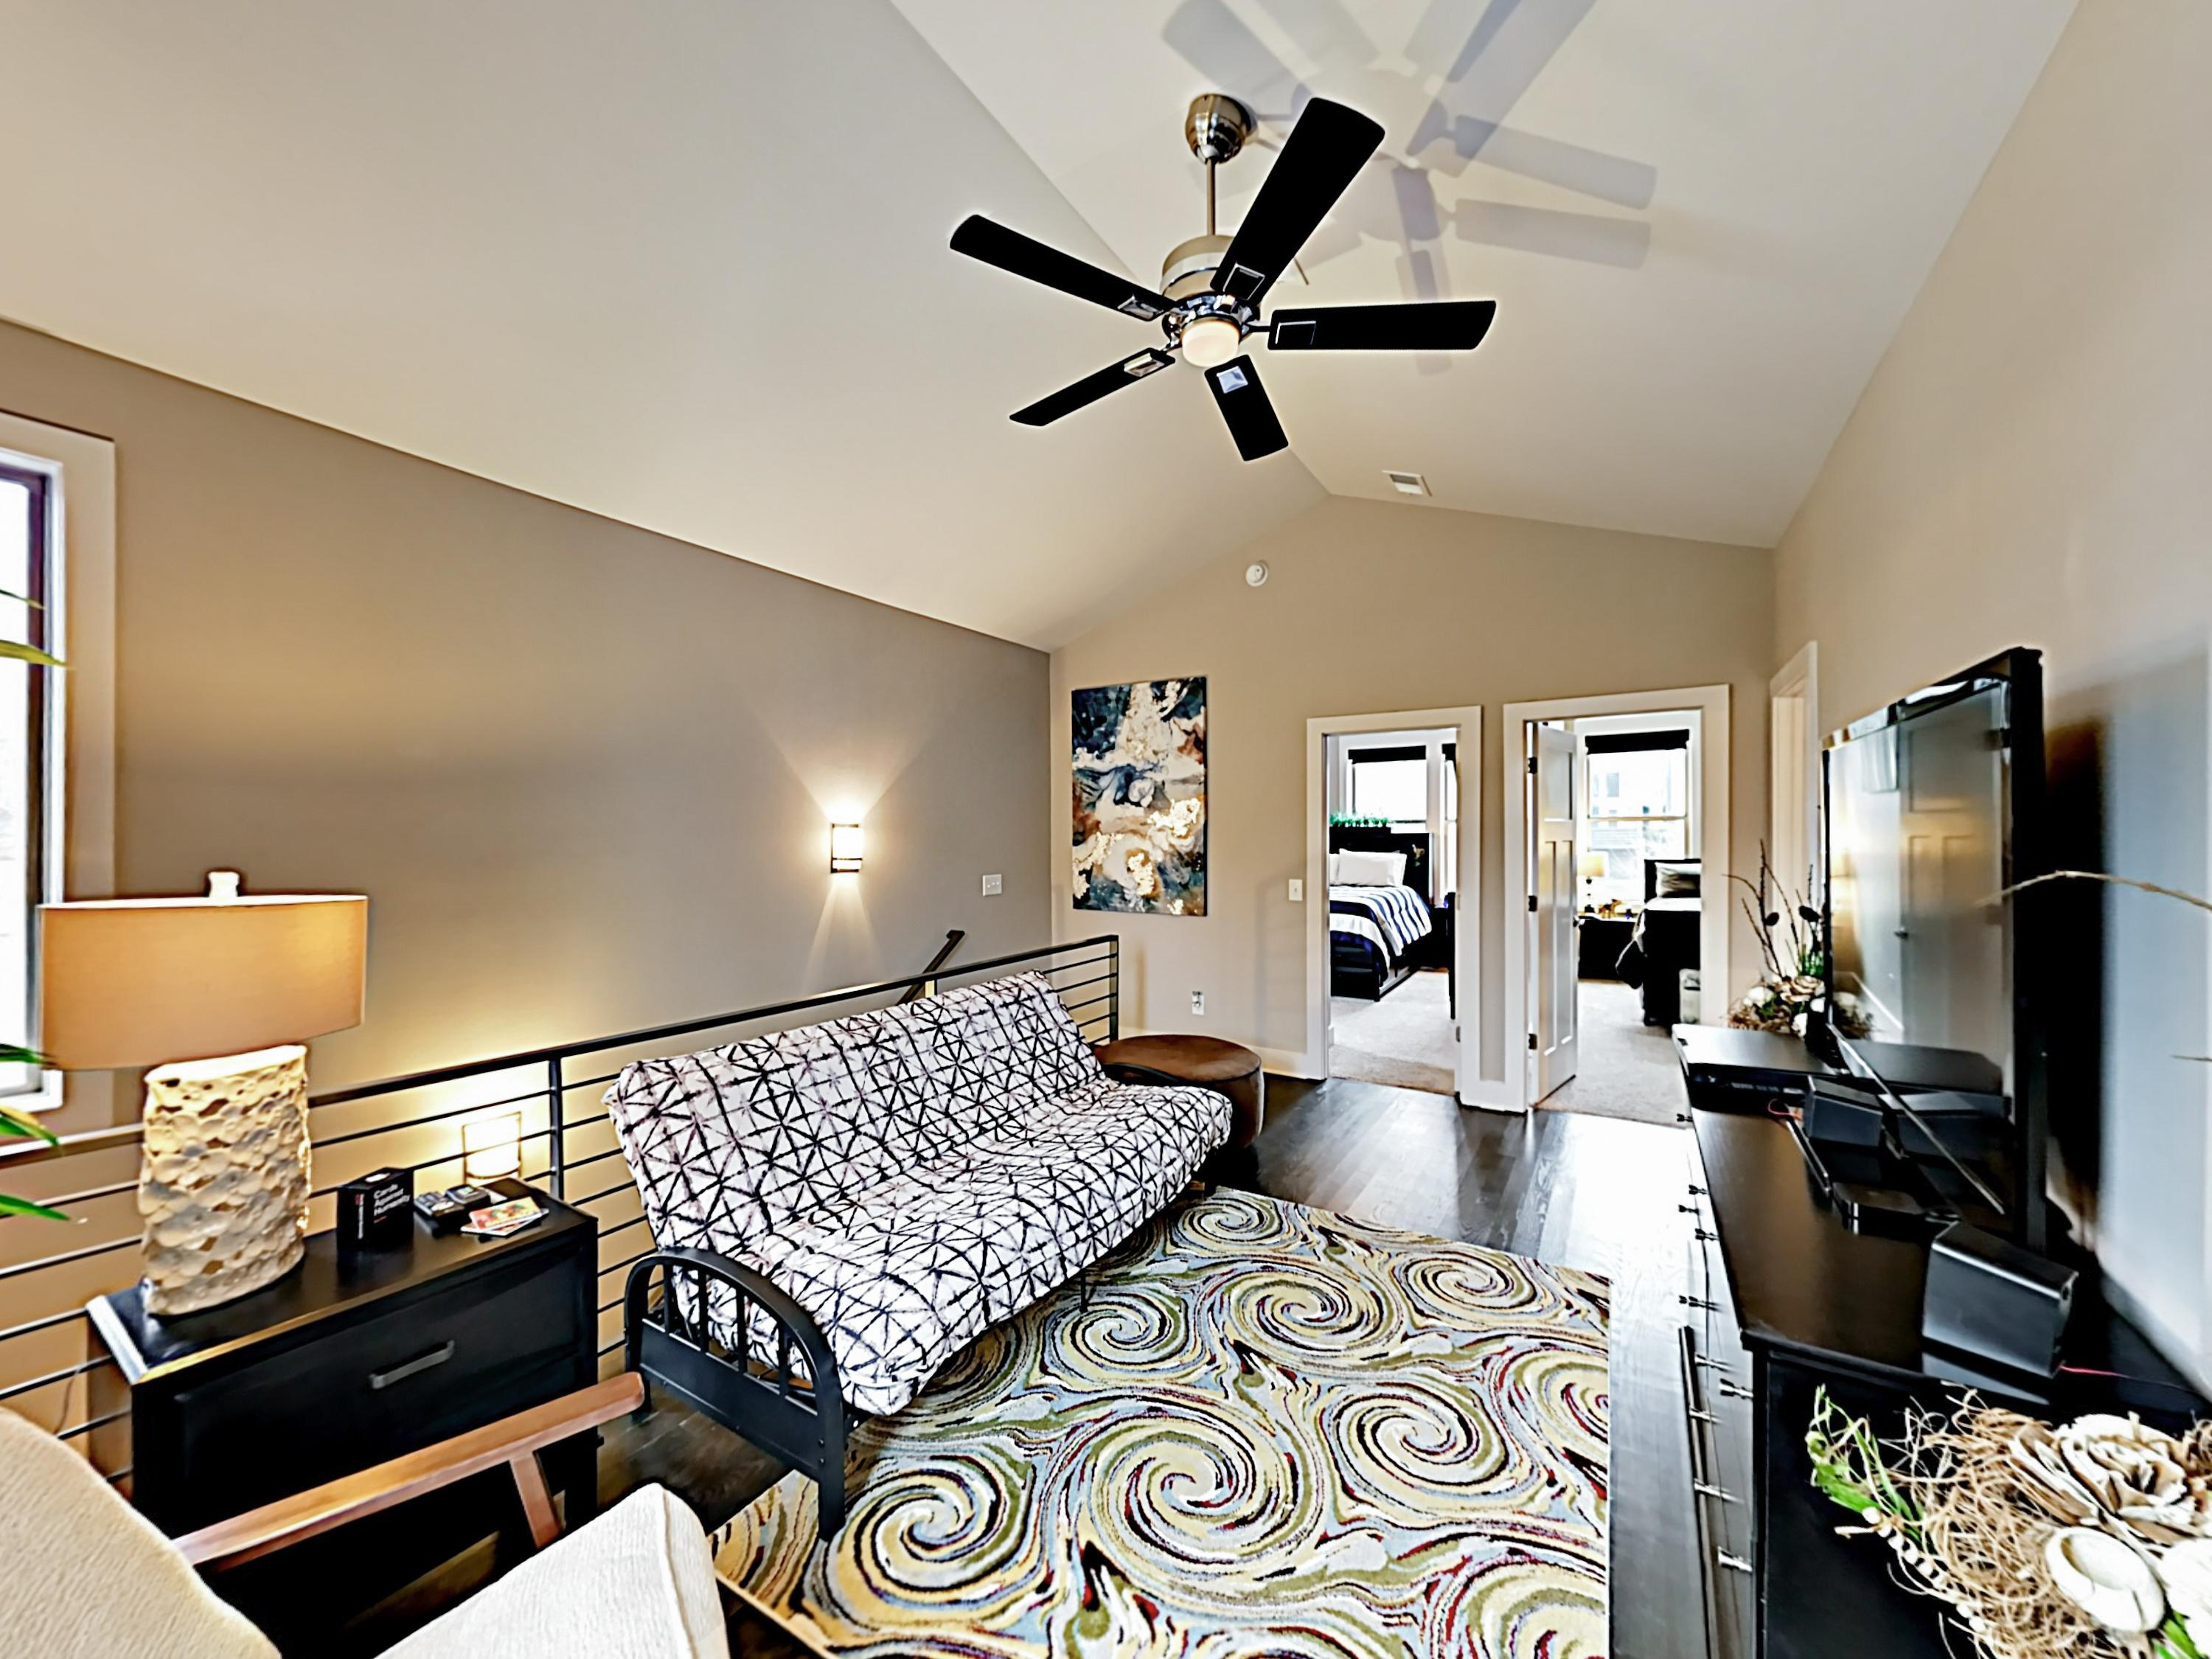 Welcome to Nashville! This townhouse is professionally managed by TurnKey Vacation Rentals.